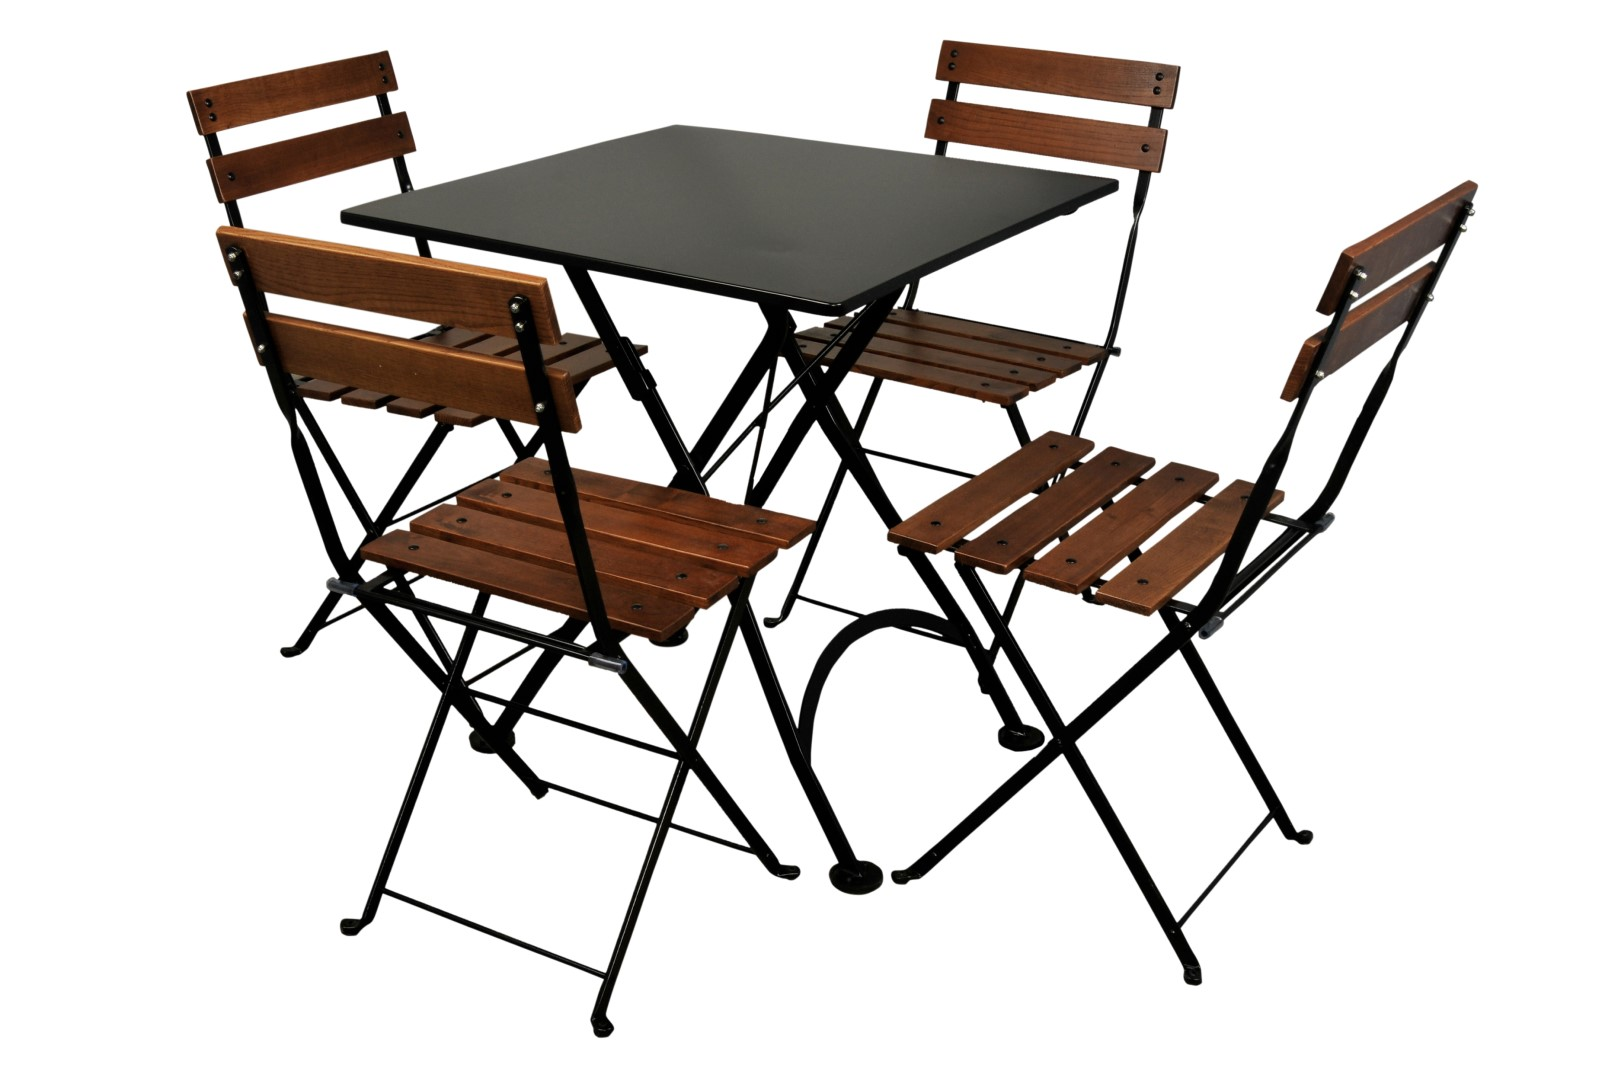 4113S-BK Table and 5502CW-BK Chairs